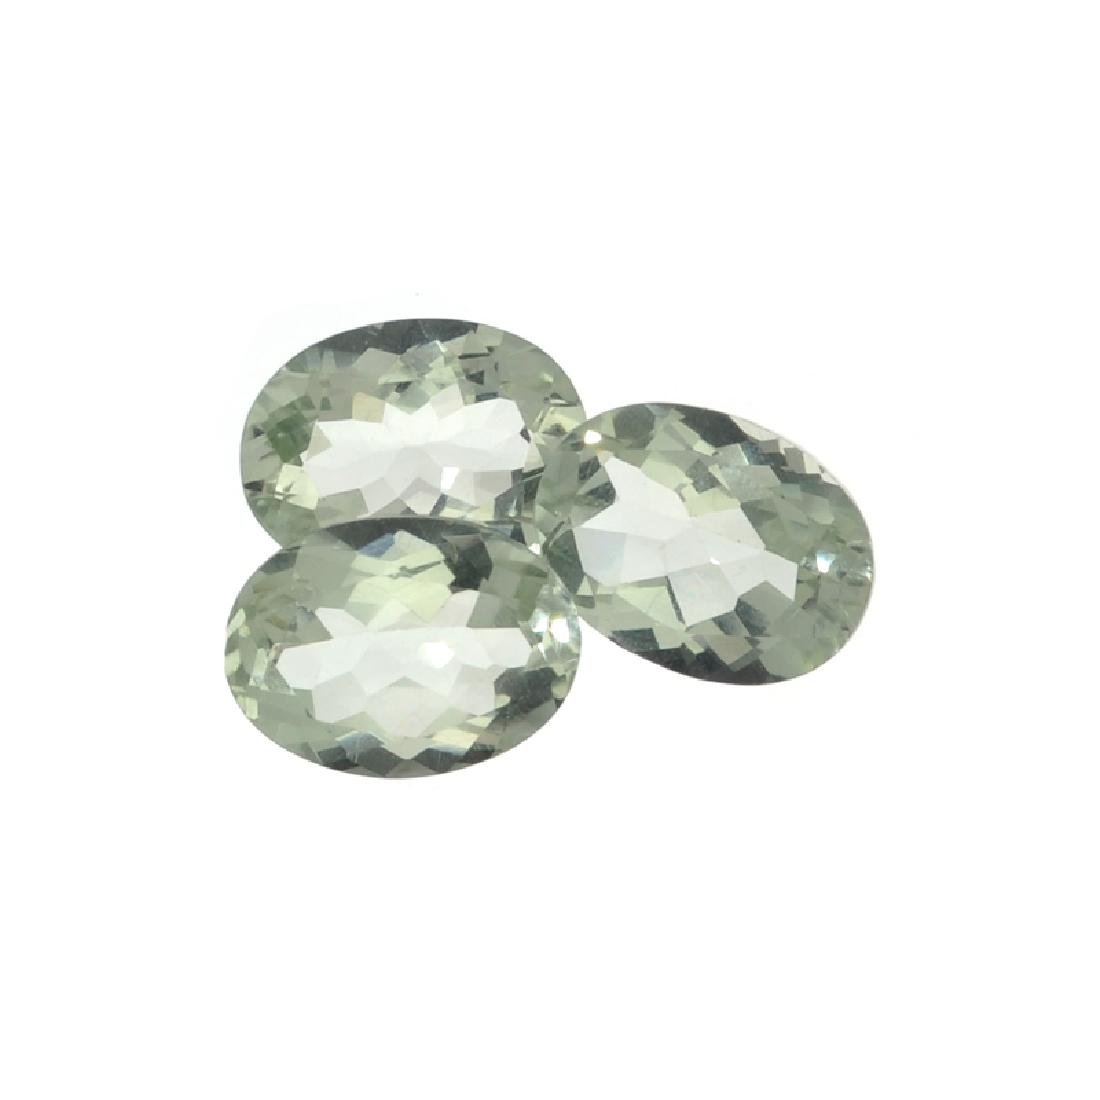 APP: 1k 22.00CT Oval Cut Green Quartz Parcel